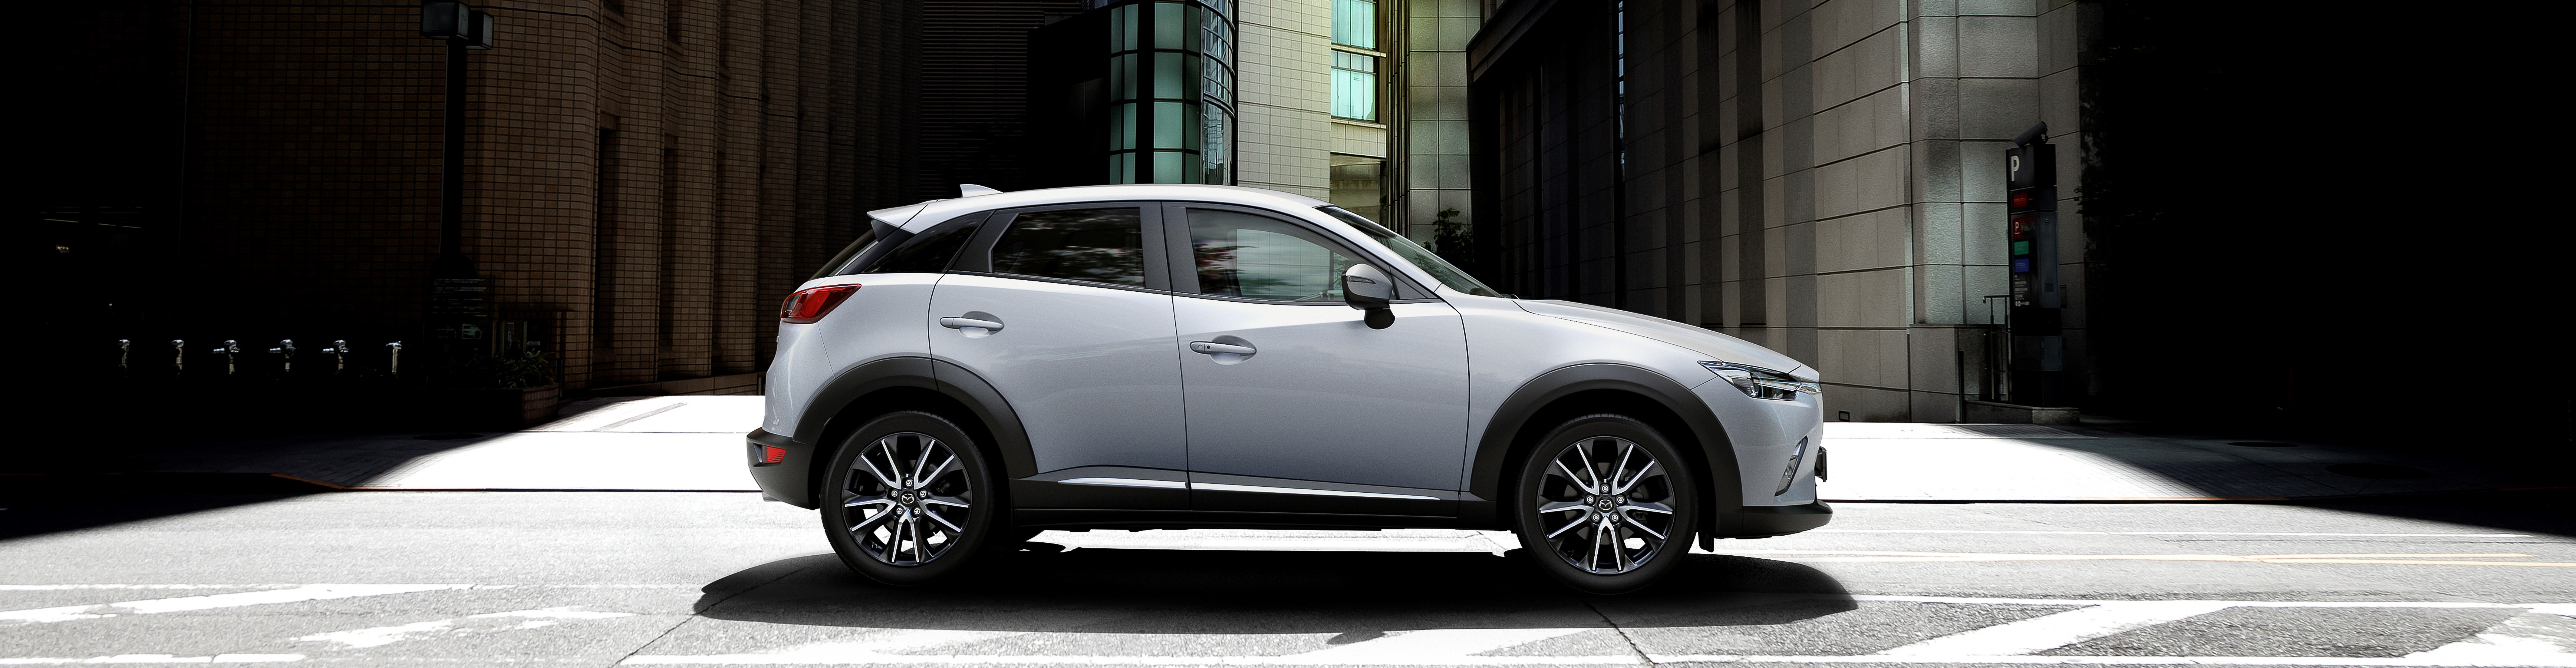 Offer Cover Image Discount on Mazda CX3